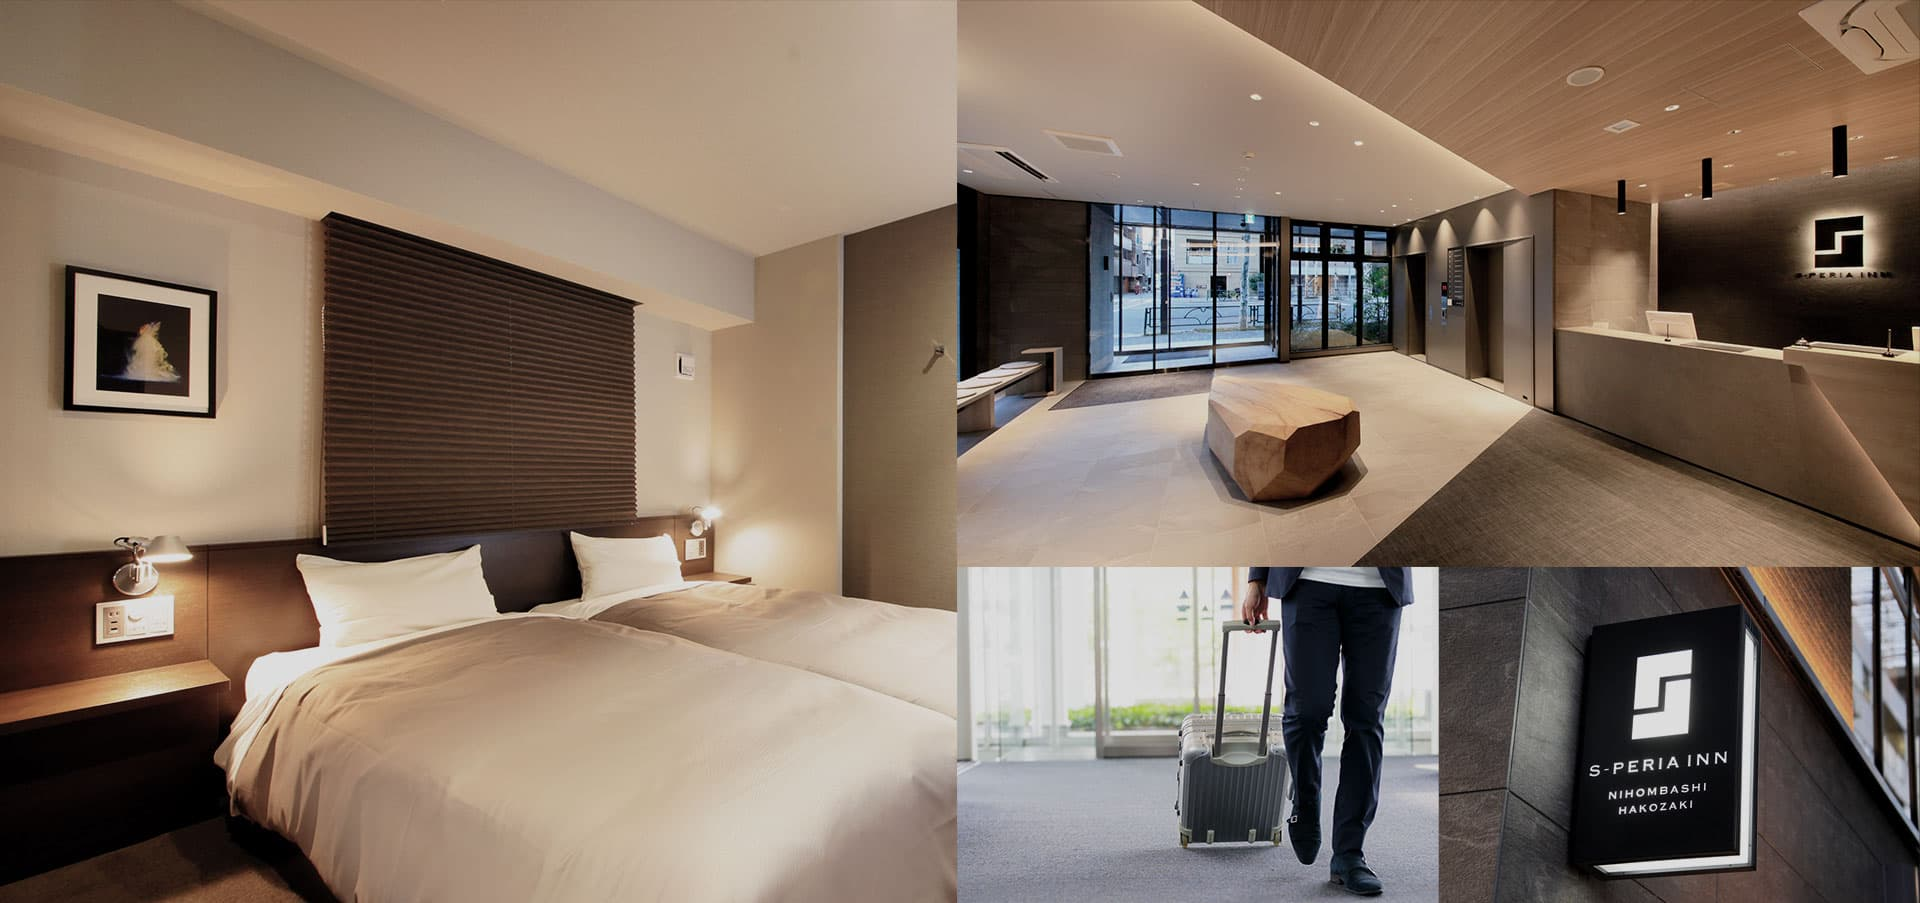 S-Peria Inn Nihonbashi Hakozaki November/2018 GRAND OPEN Three-minute walk from Tokyo City Air Terminal. Convenient and stylish hotel for business and leisure.